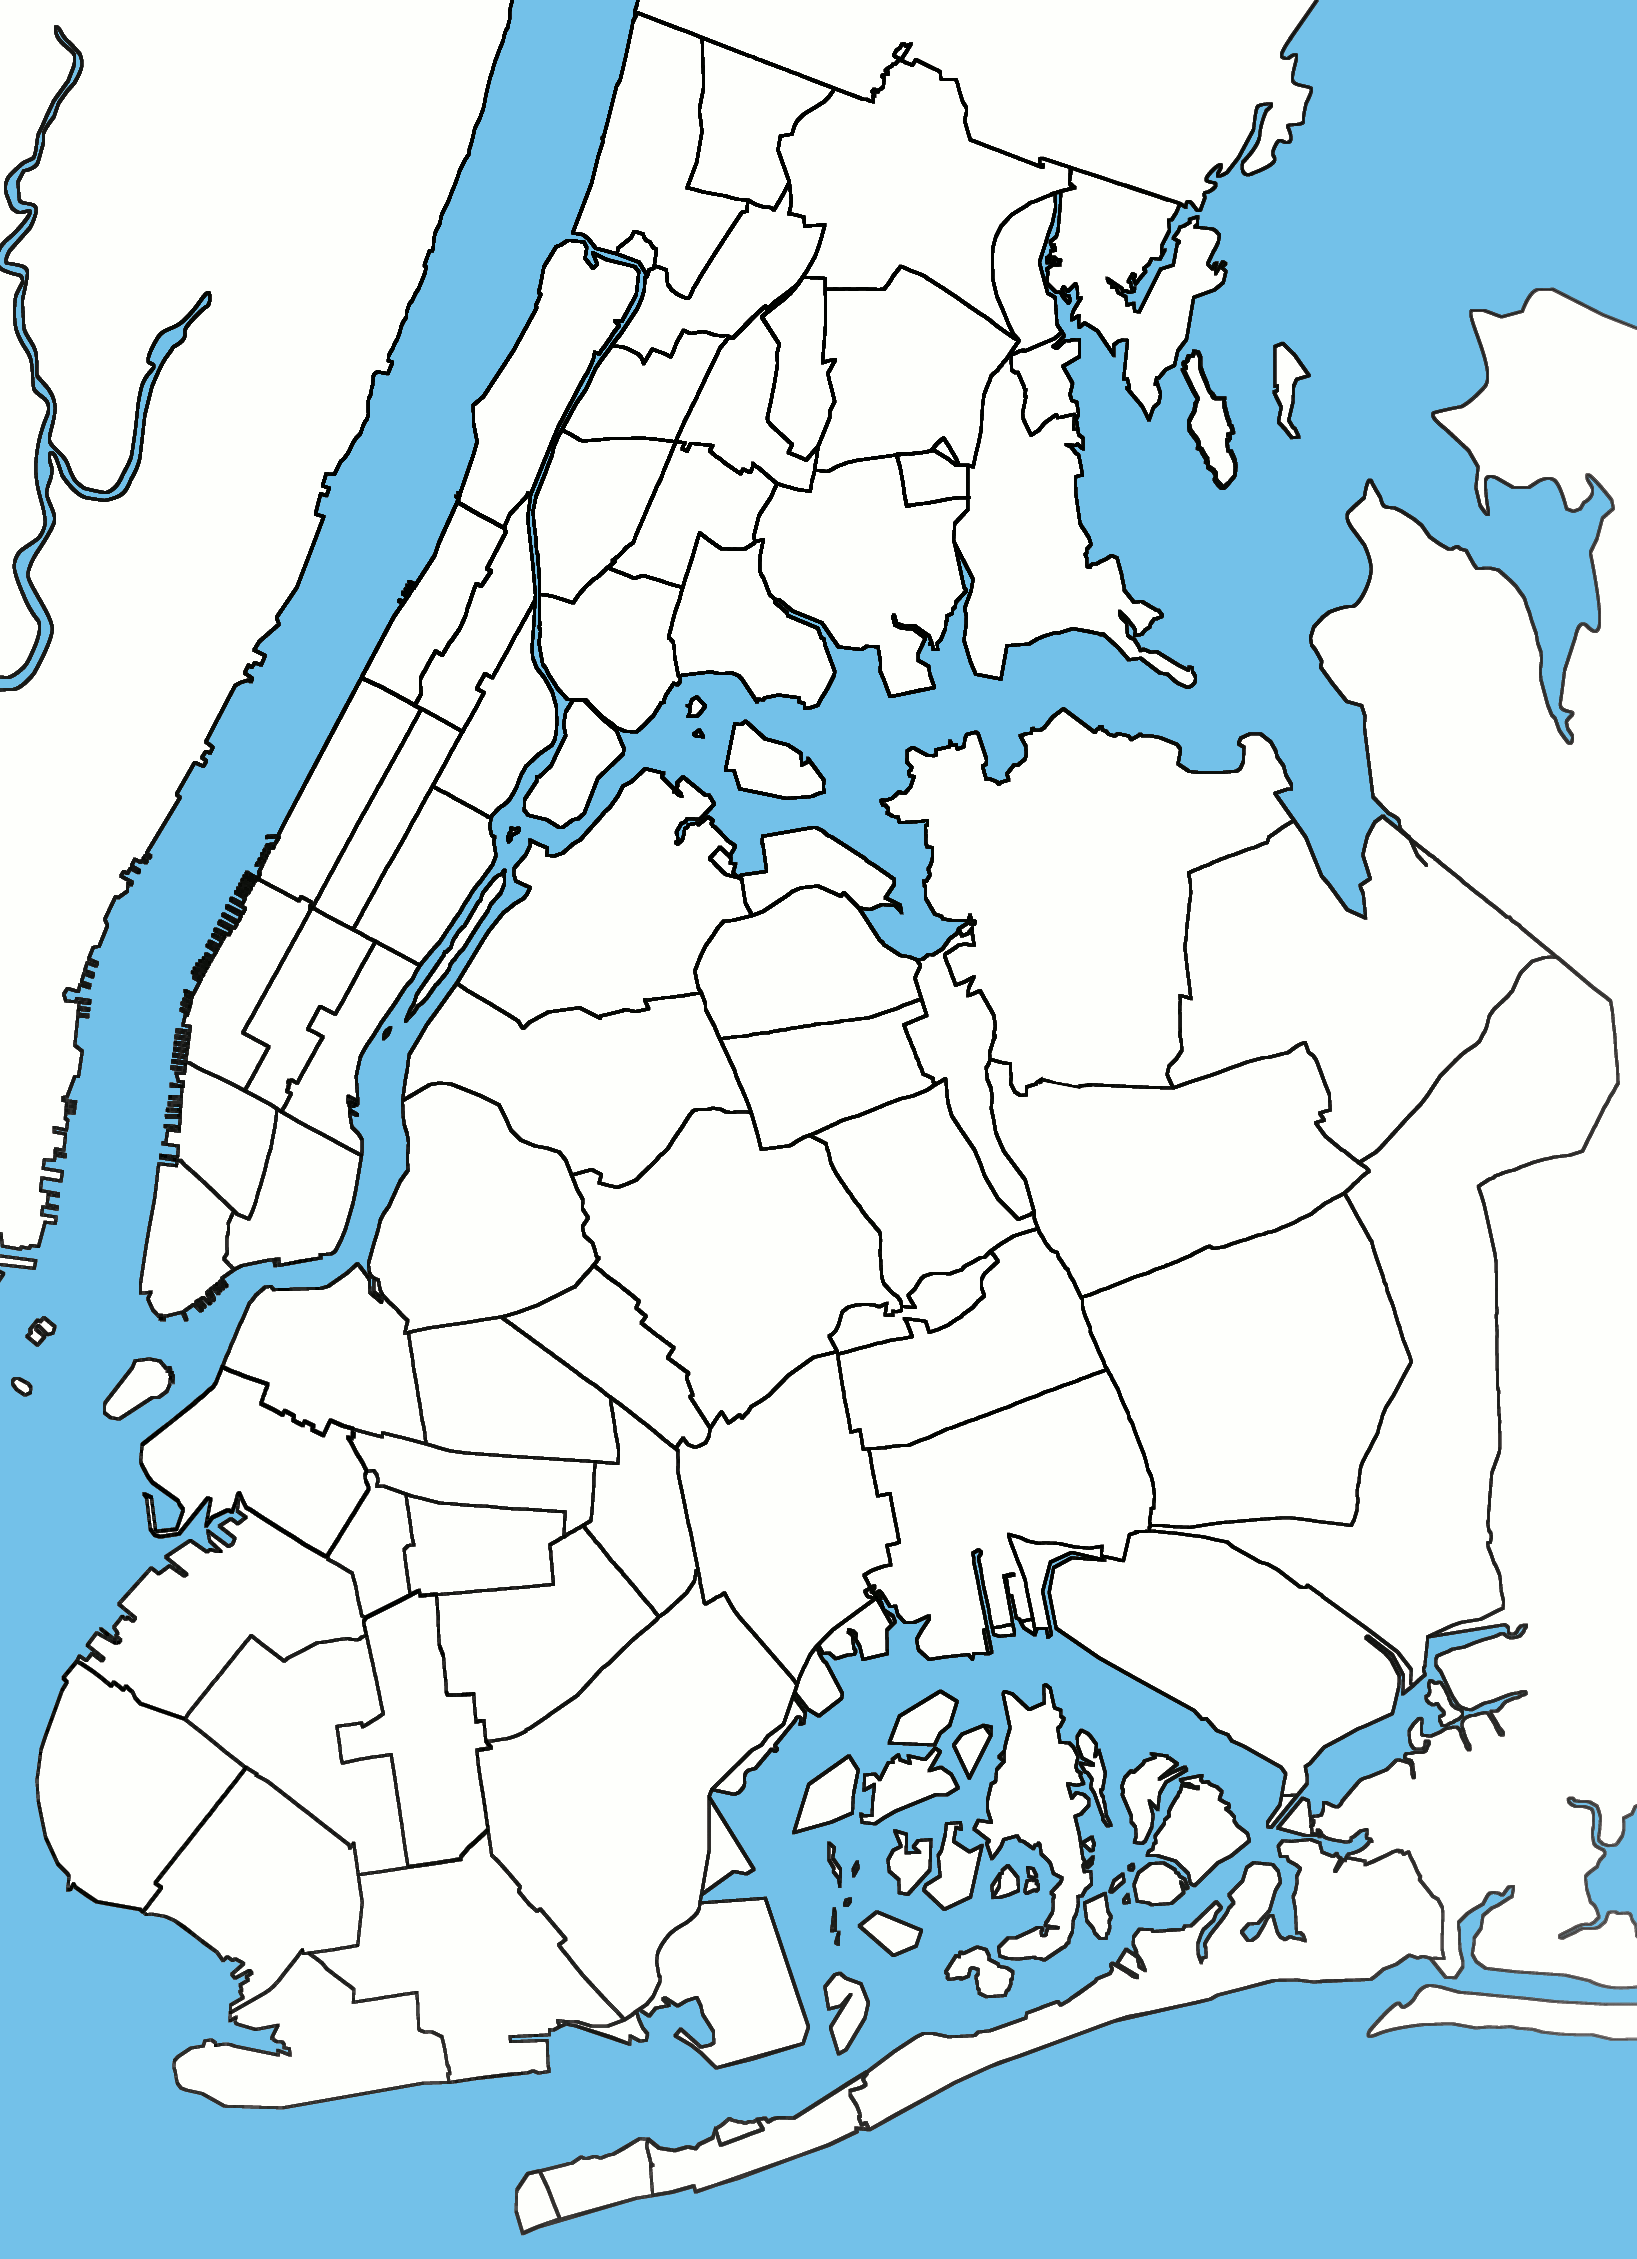 FileNewYorkCityneighborhoodsblanklinewidthpng Wikimedia - New york neighborhood map